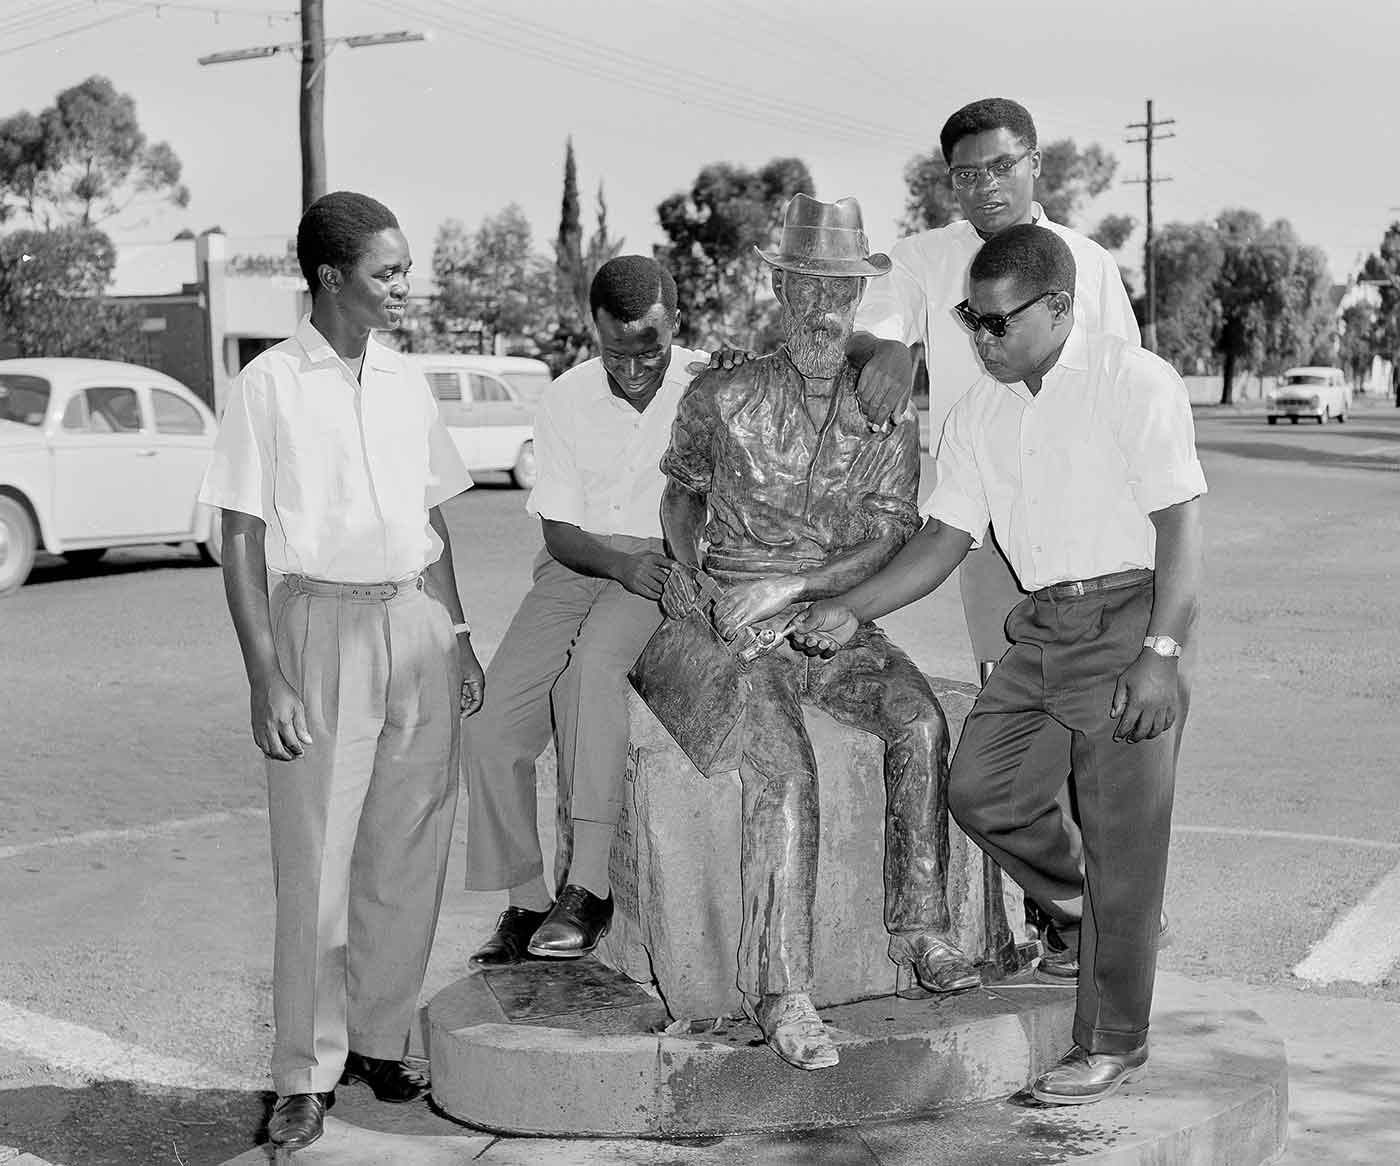 Black and white photo of a street scene with four men standing and sitting around a memorial statue of a man.